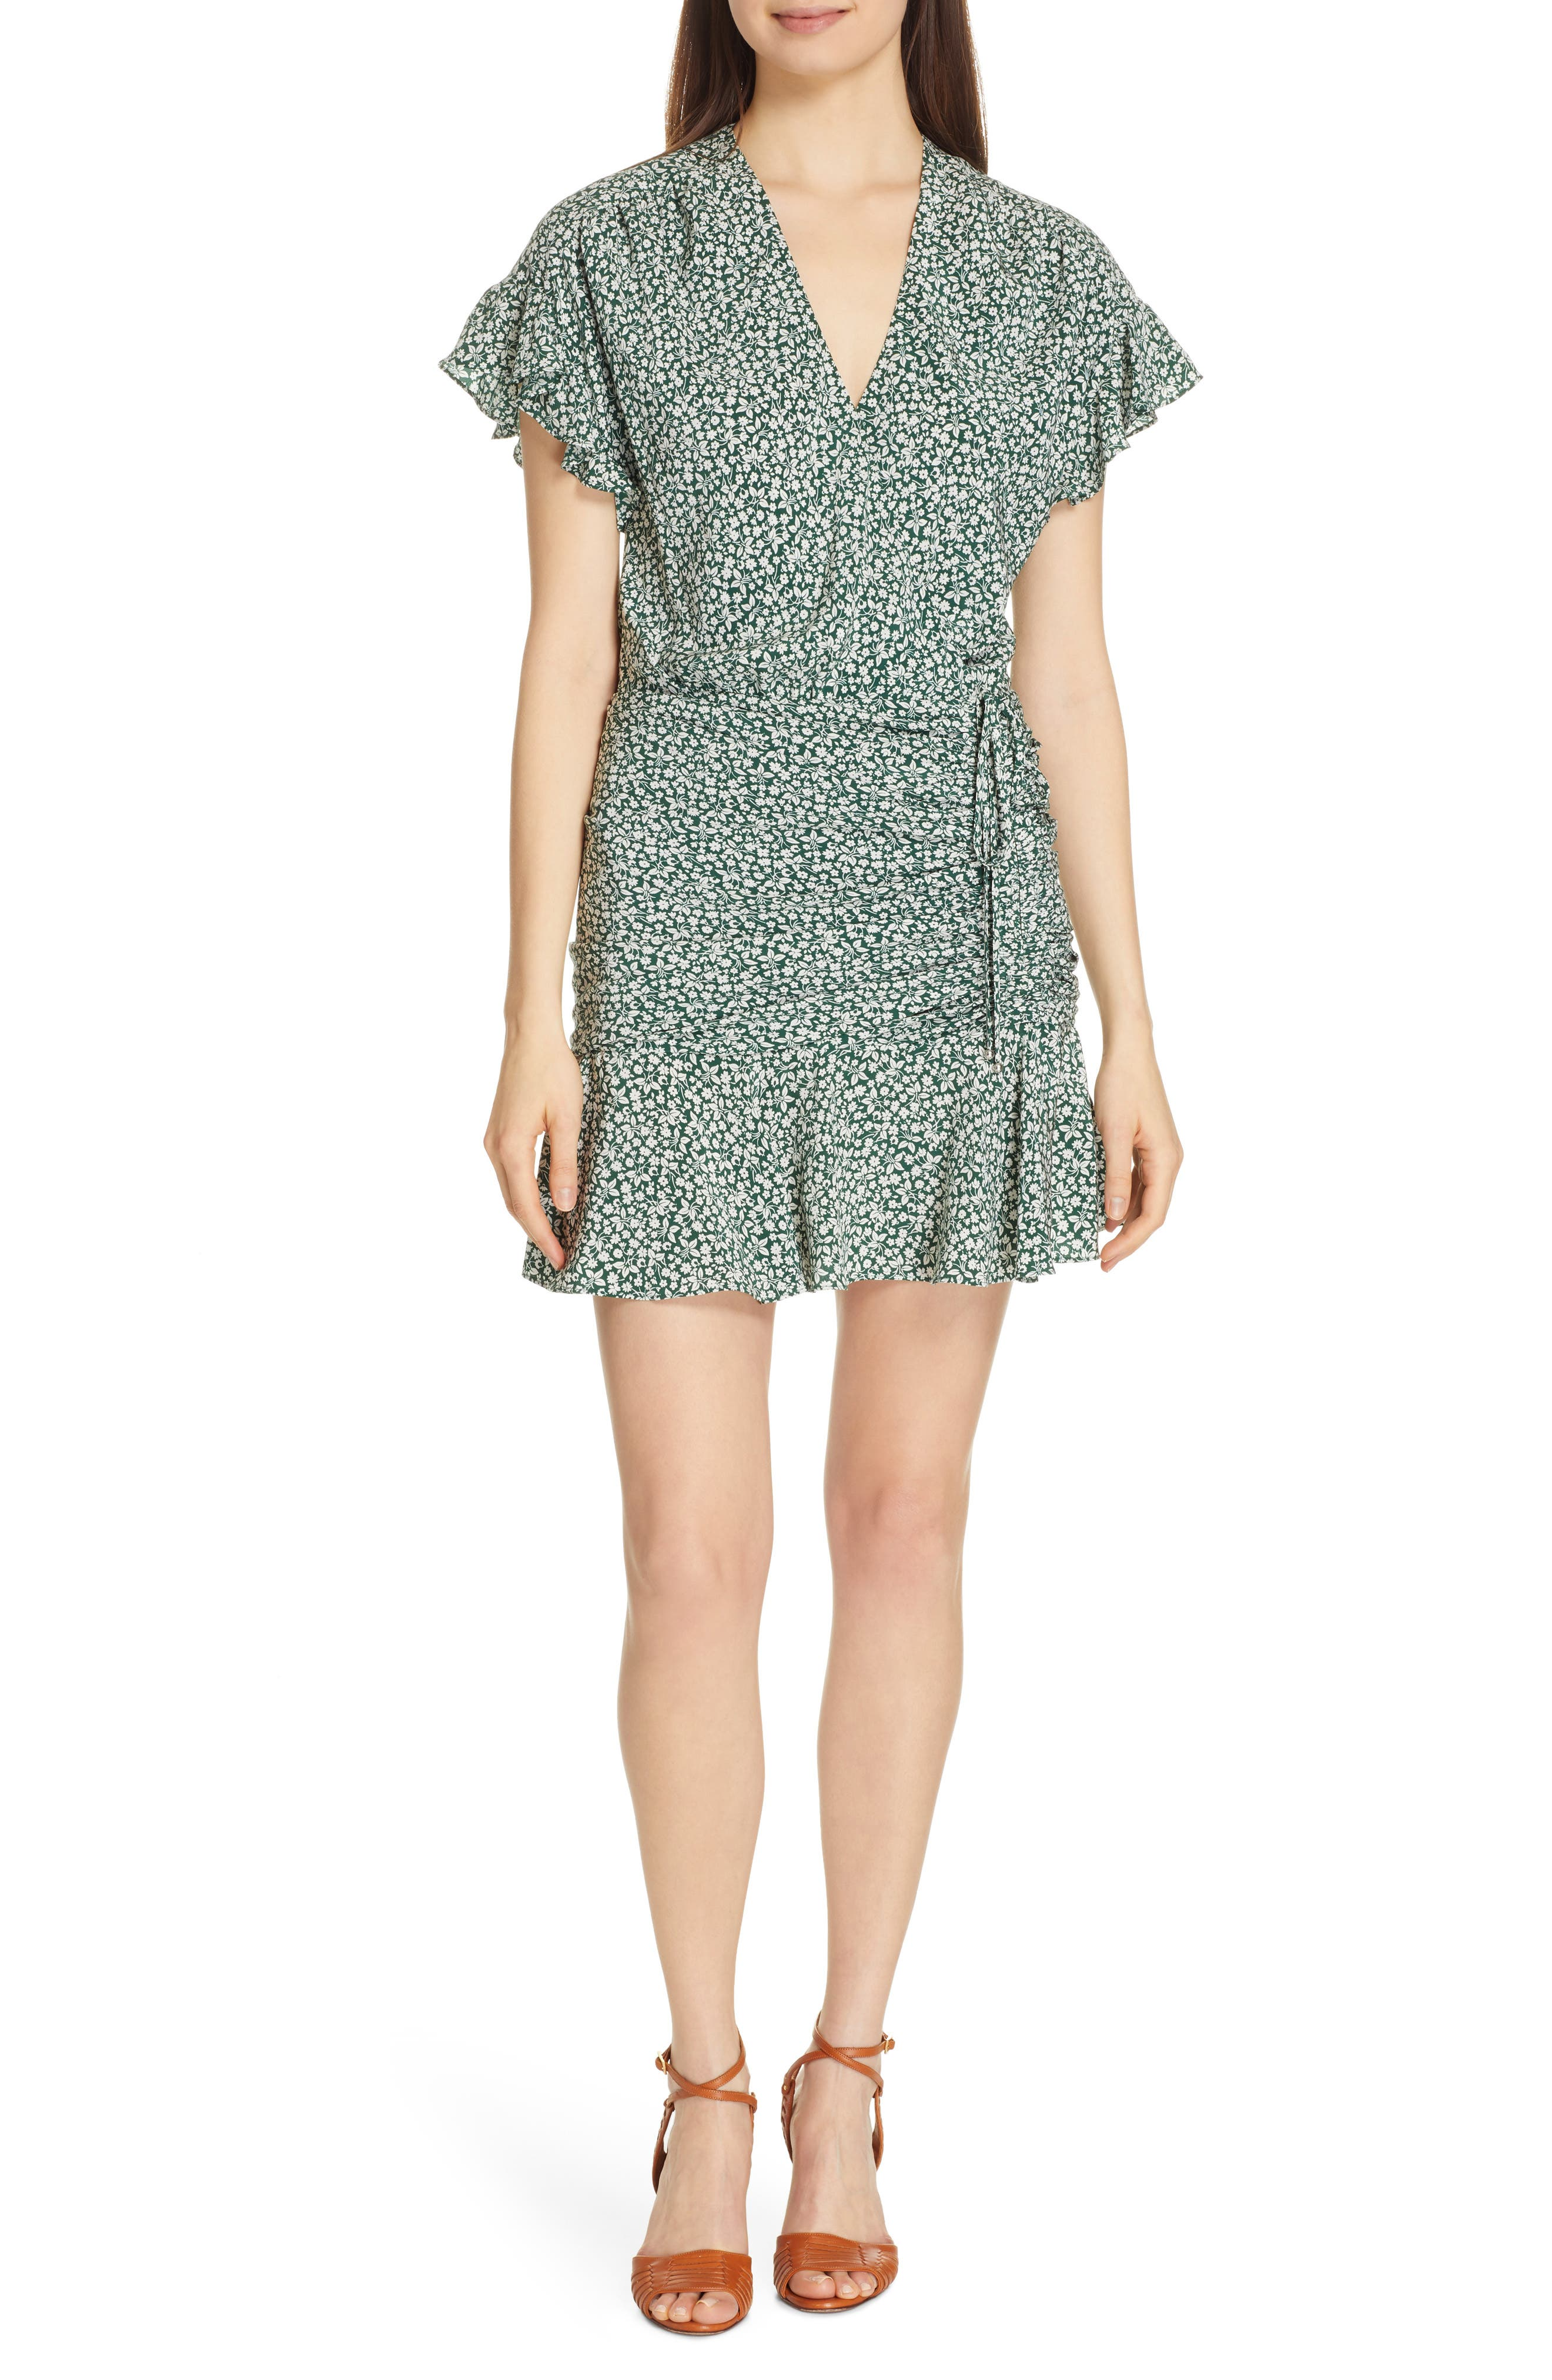 VERONICA BEARD, Marla Tie Ruched Silk Minidress, Main thumbnail 1, color, FOREST GREEN